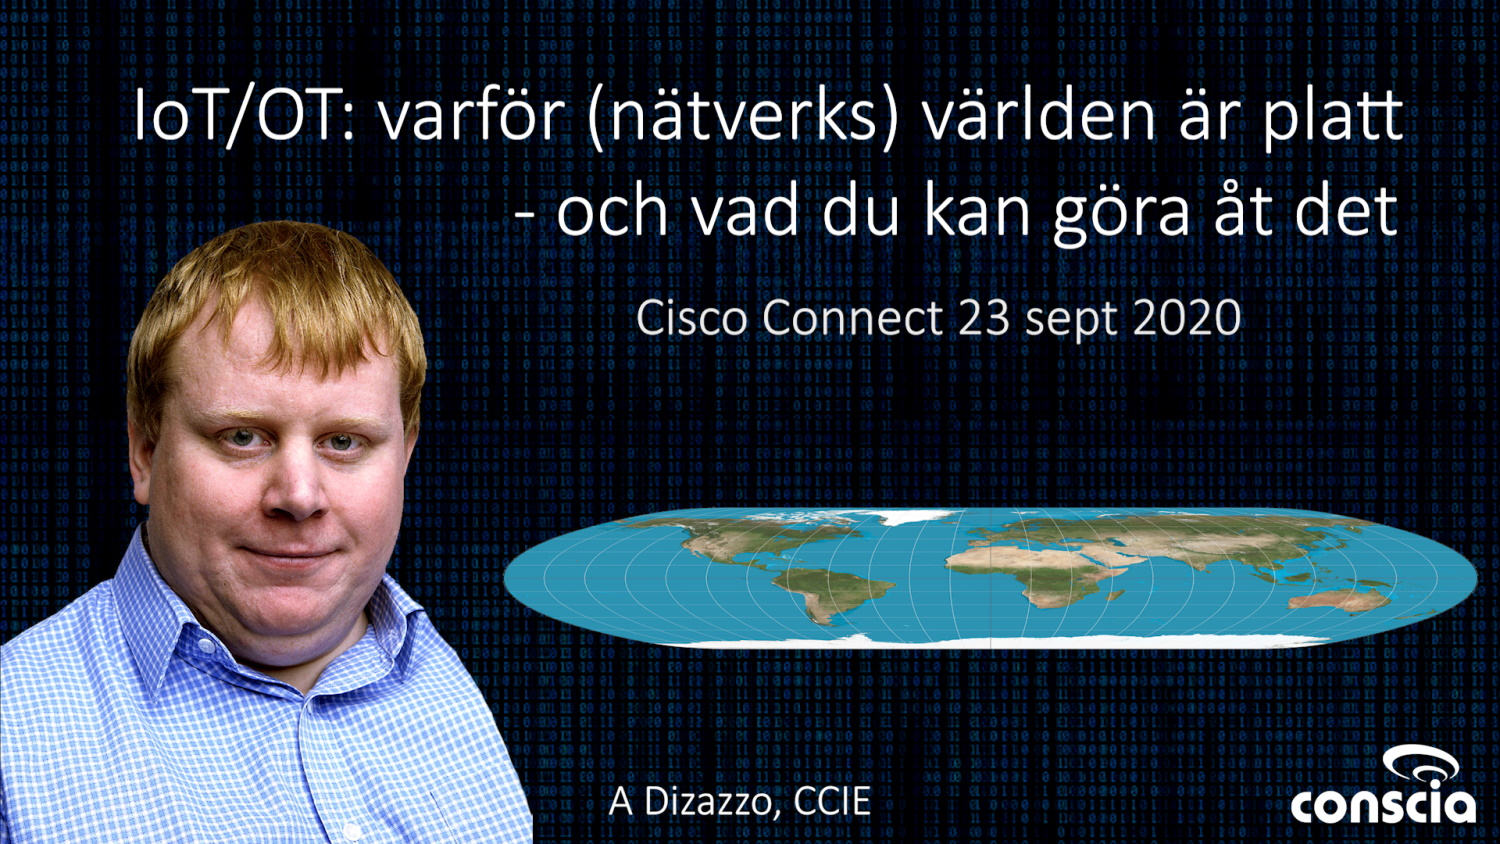 Cisco Connect Sverige 2020 Andreas Dizazzo Conscia CCIE IoT OT